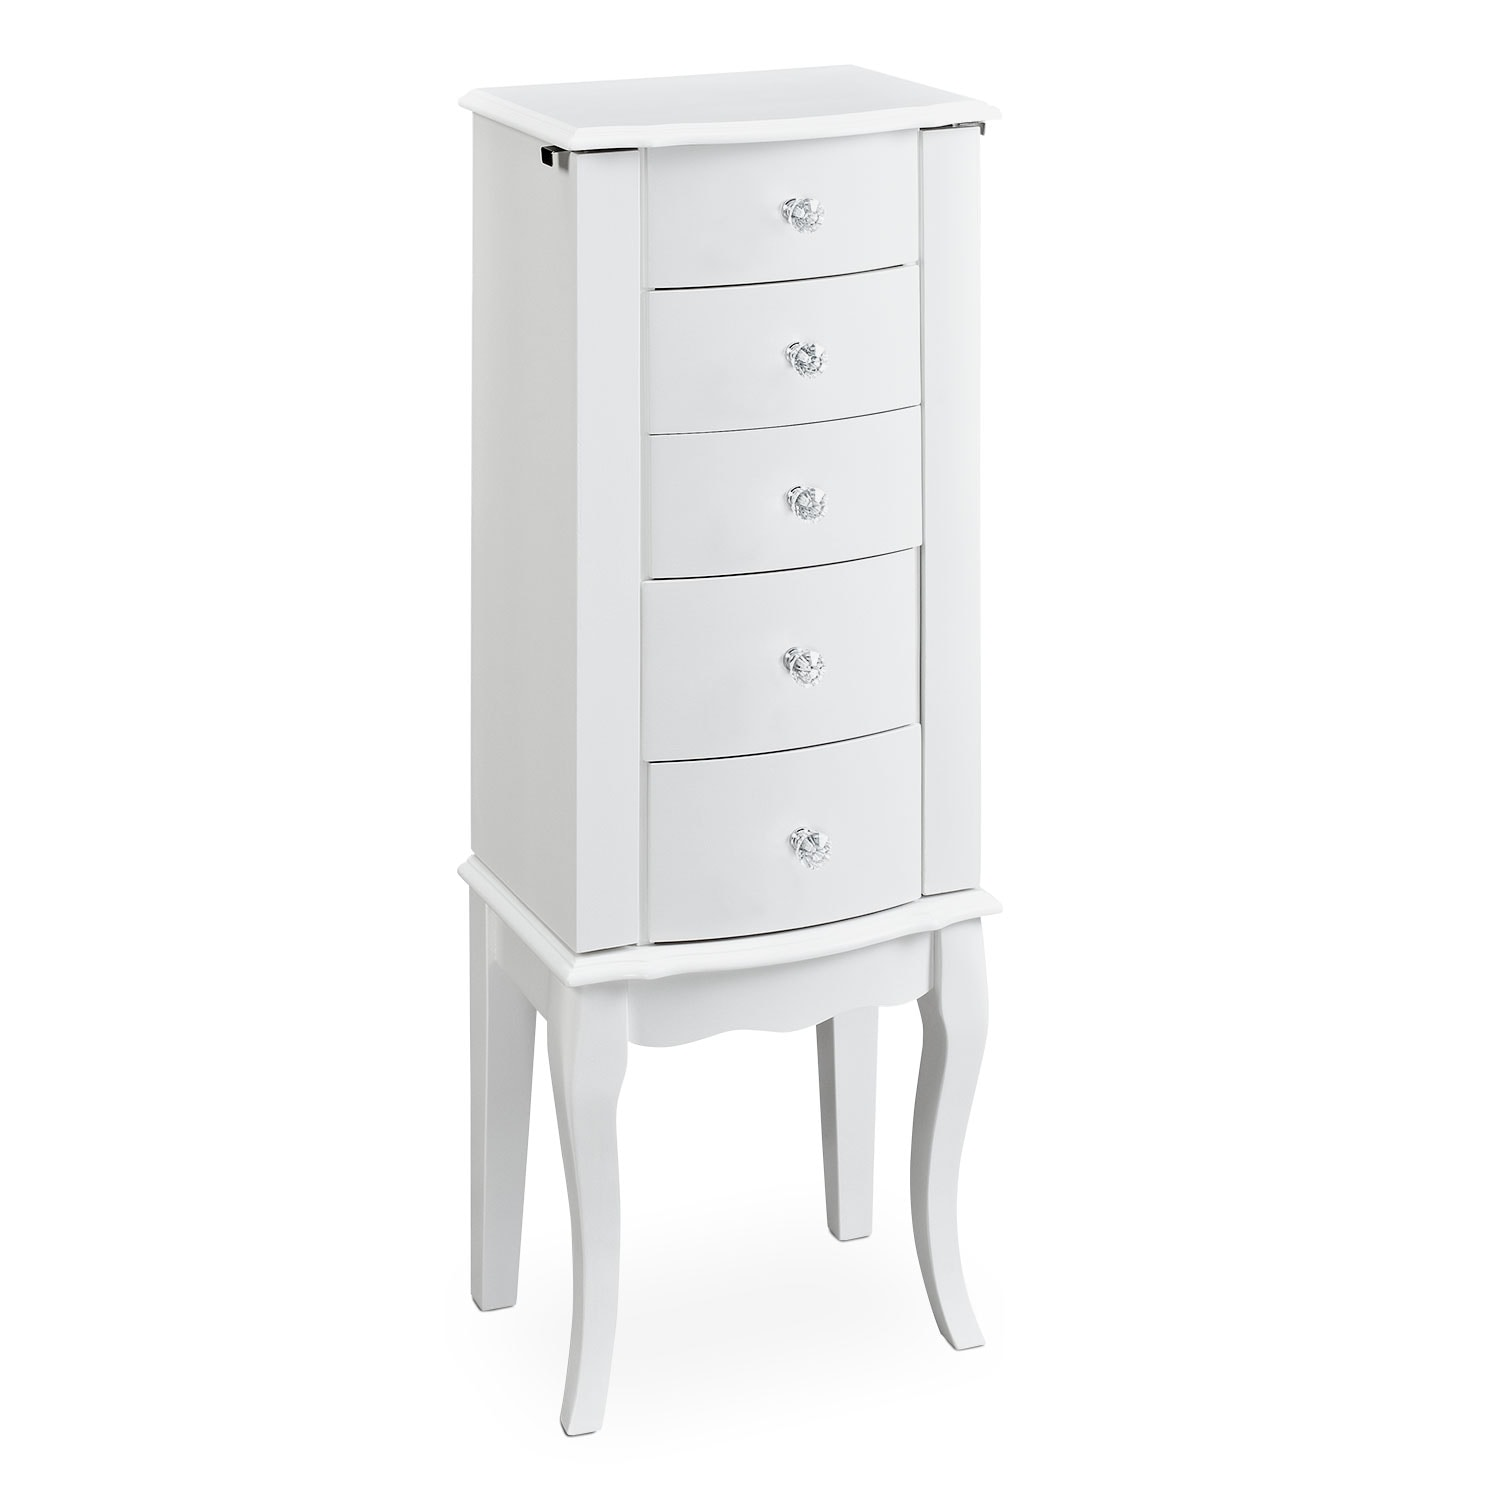 Accent and Occasional Furniture - Hallie Jewelry Armoire